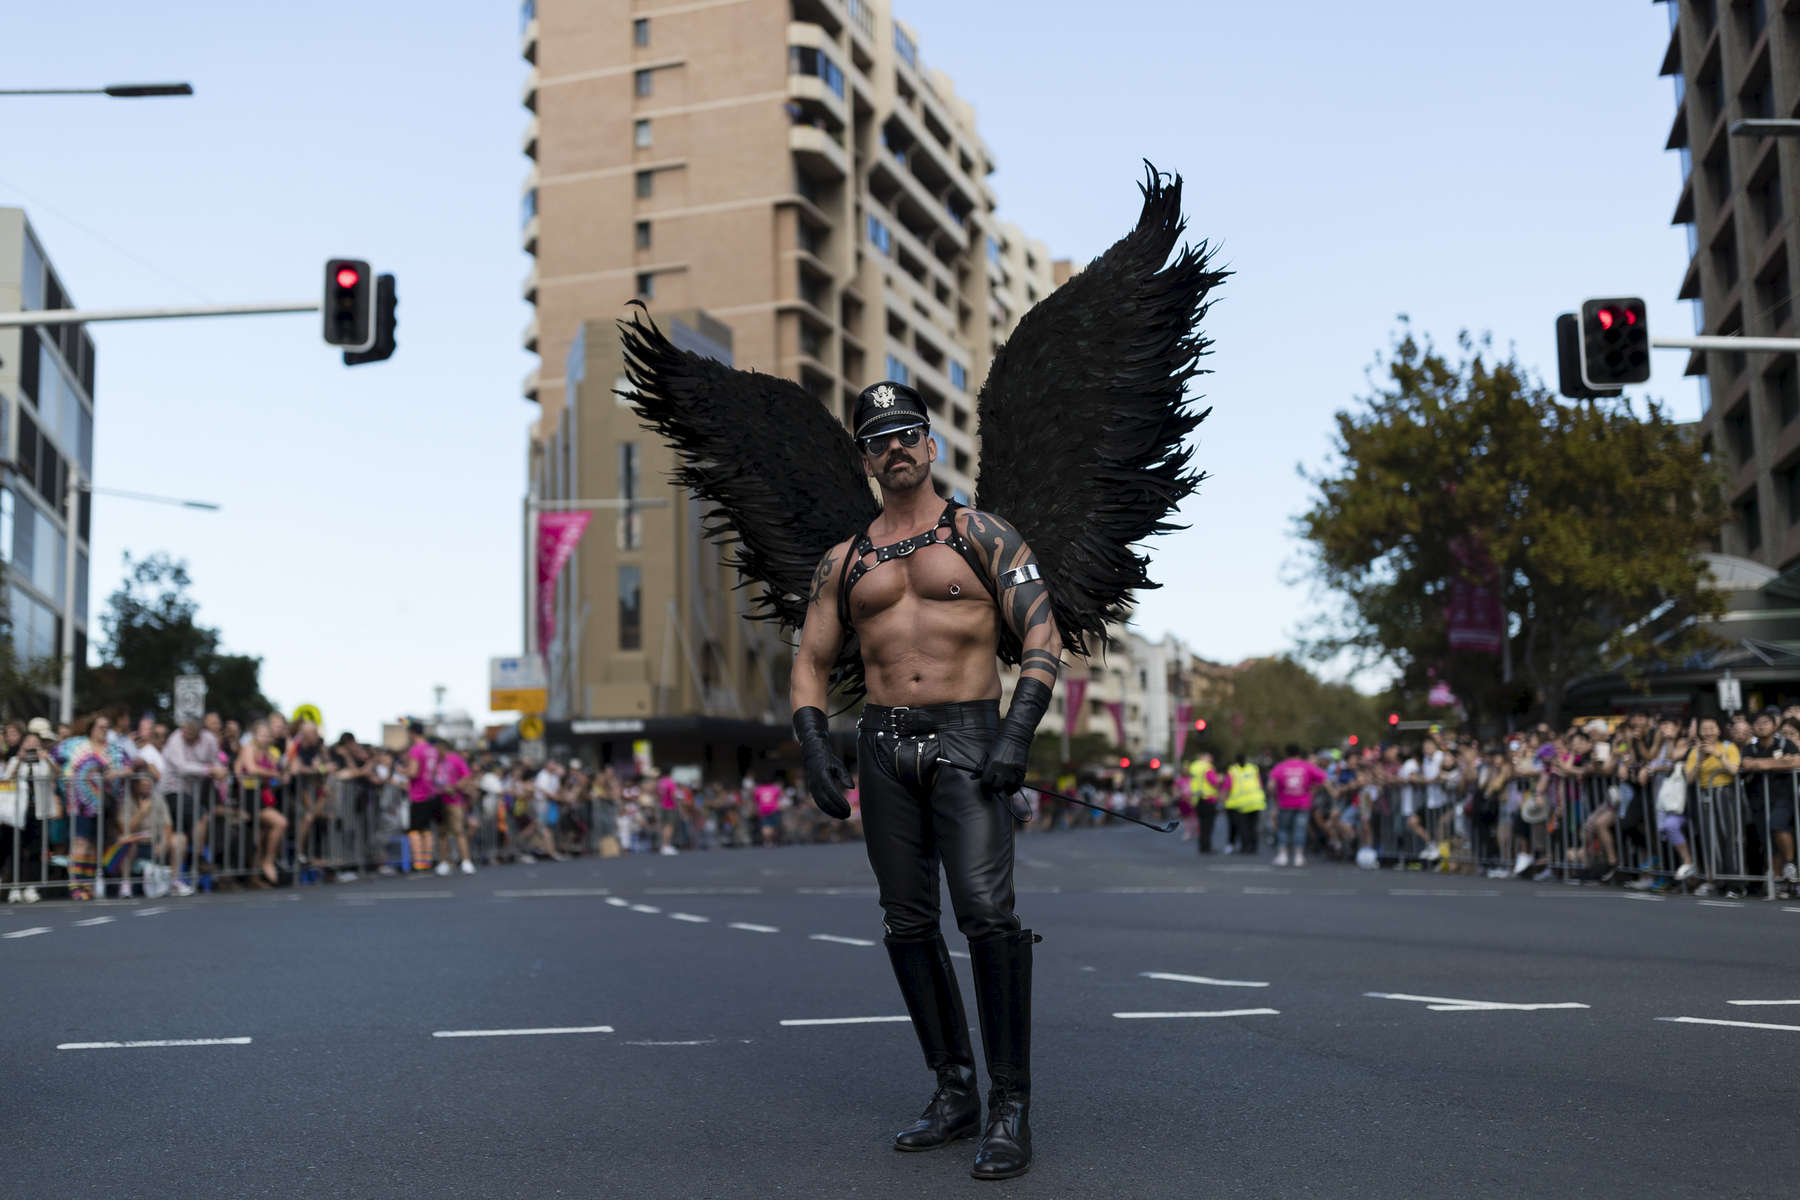 SYDNEY, NEW SOUTH WALES - MARCH 03:  A reveller is pictured on Oxford Street before the 2018 Sydney Gay & Lesbian Mardi Gras Parade on March 3, 2018 in Sydney, Australia.  The Sydney Mardi Gras parade began in 1978 as a march and commemoration of the 1969 Stonewall Riots of New York. It is an annual event promoting awareness of gay, lesbian, bisexual and transgender issues and themes.  (Photo by Brook Mitchell/Getty Images)